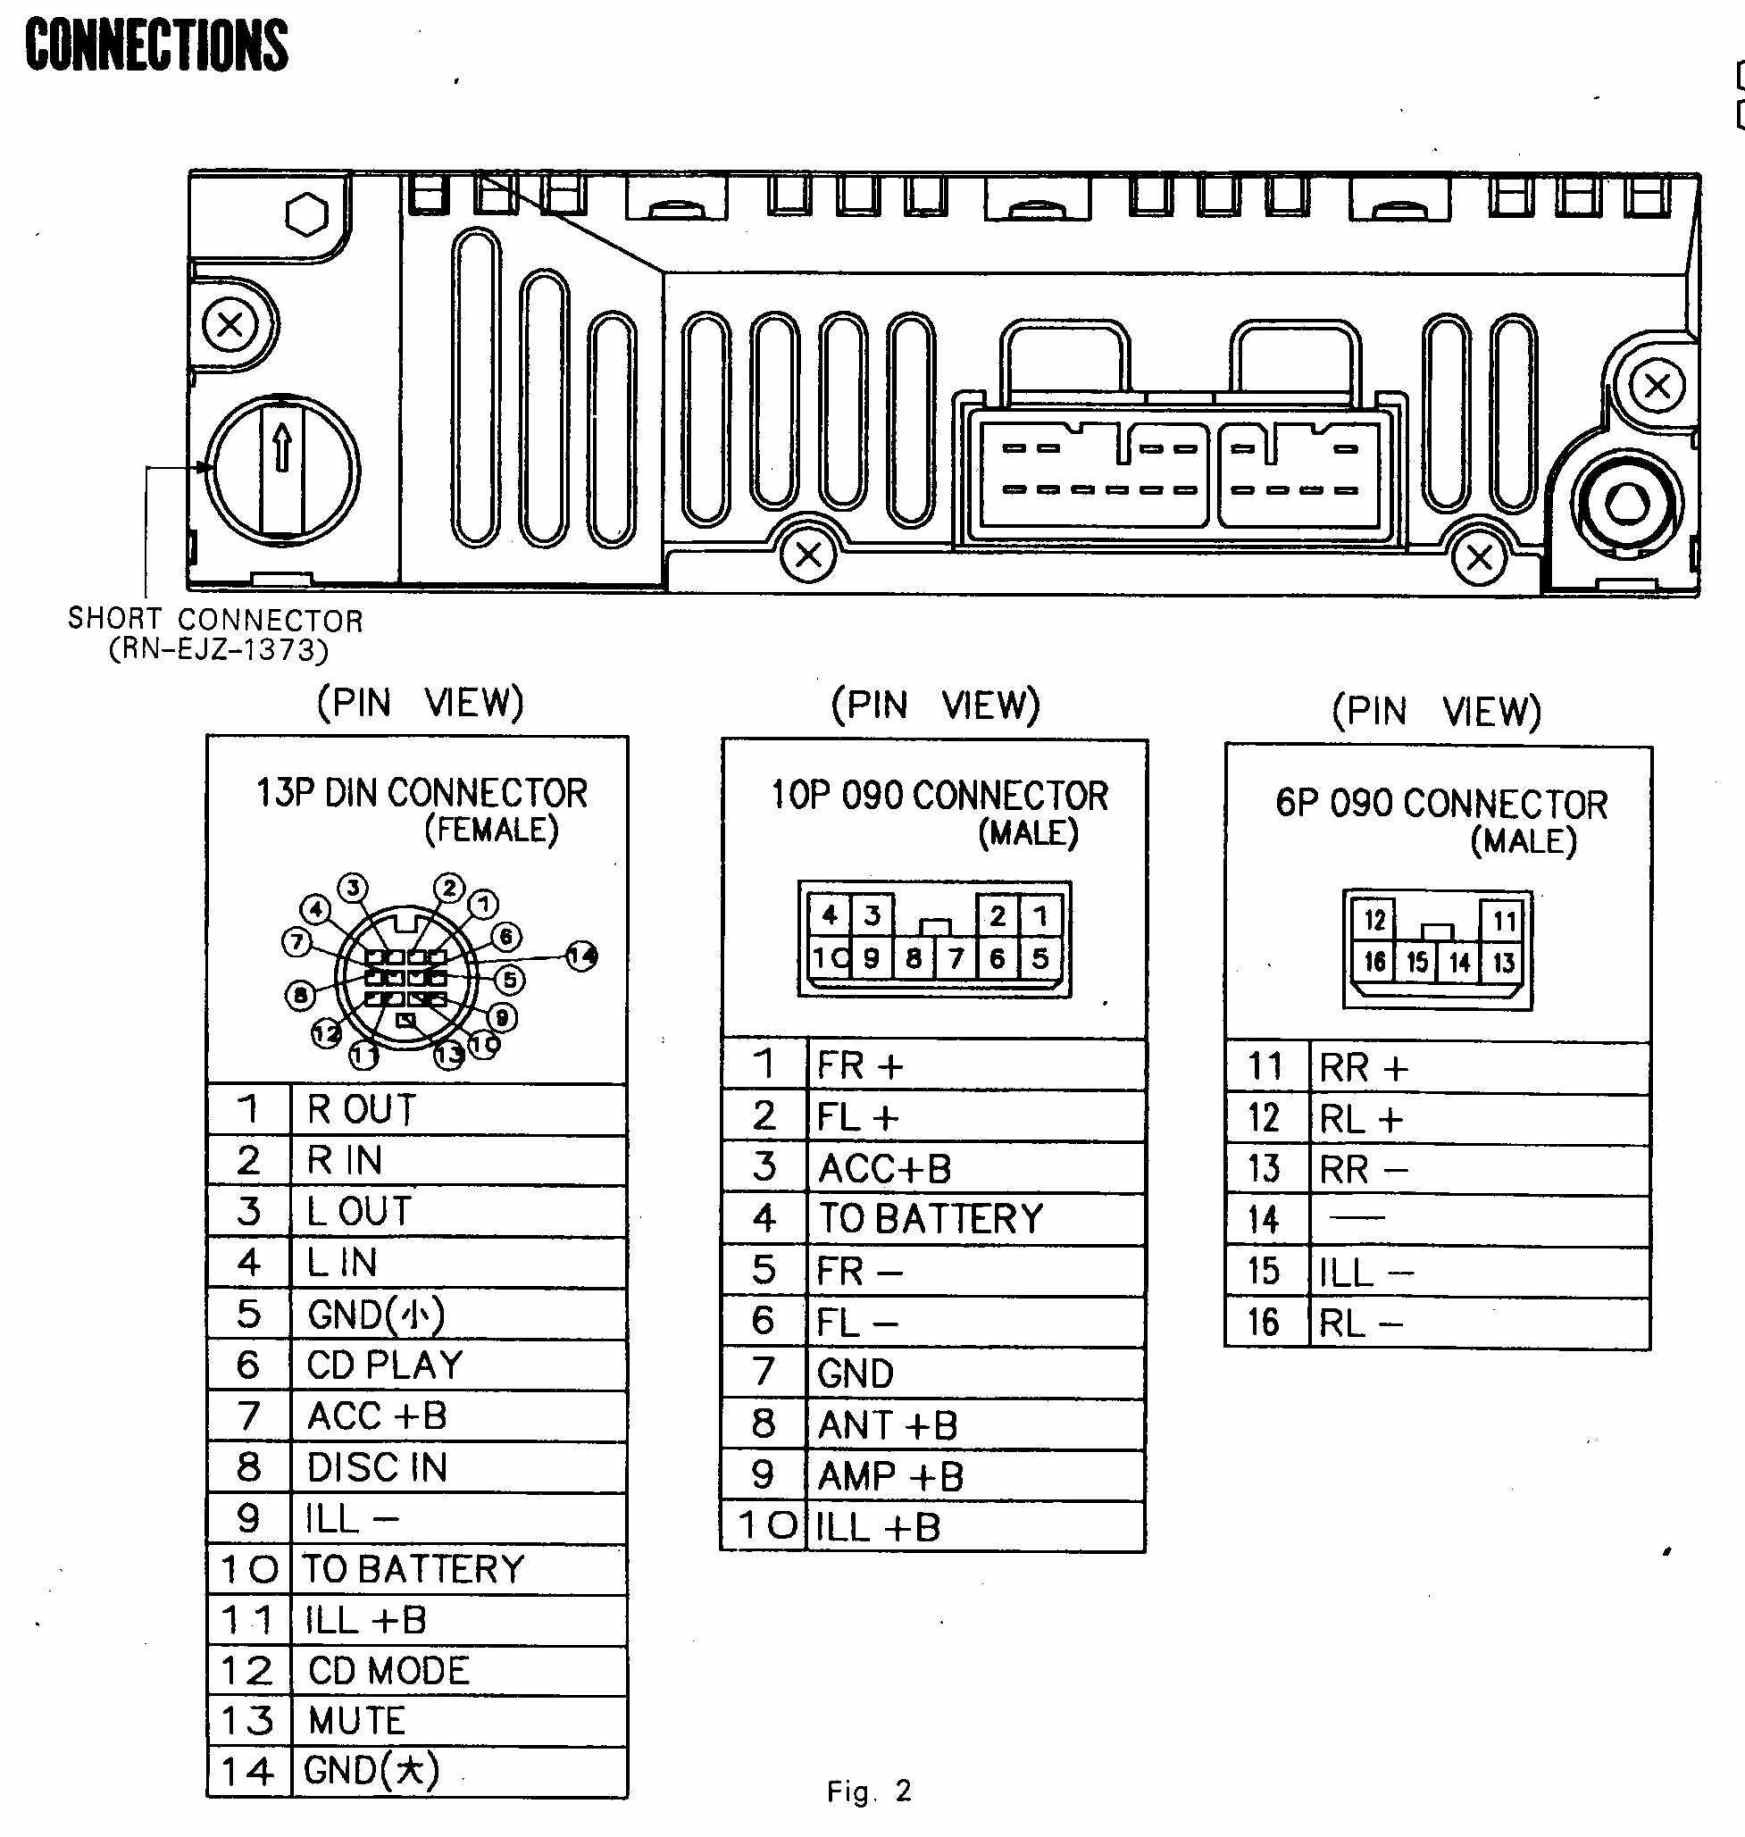 toyota radio wiring diagram pdf Download-toyota corolla radio wiring color codes britishpanto striking stereo rh deconstructmyhouse org toyota wiring colour codes toyota corolla radio wiring color 20-i